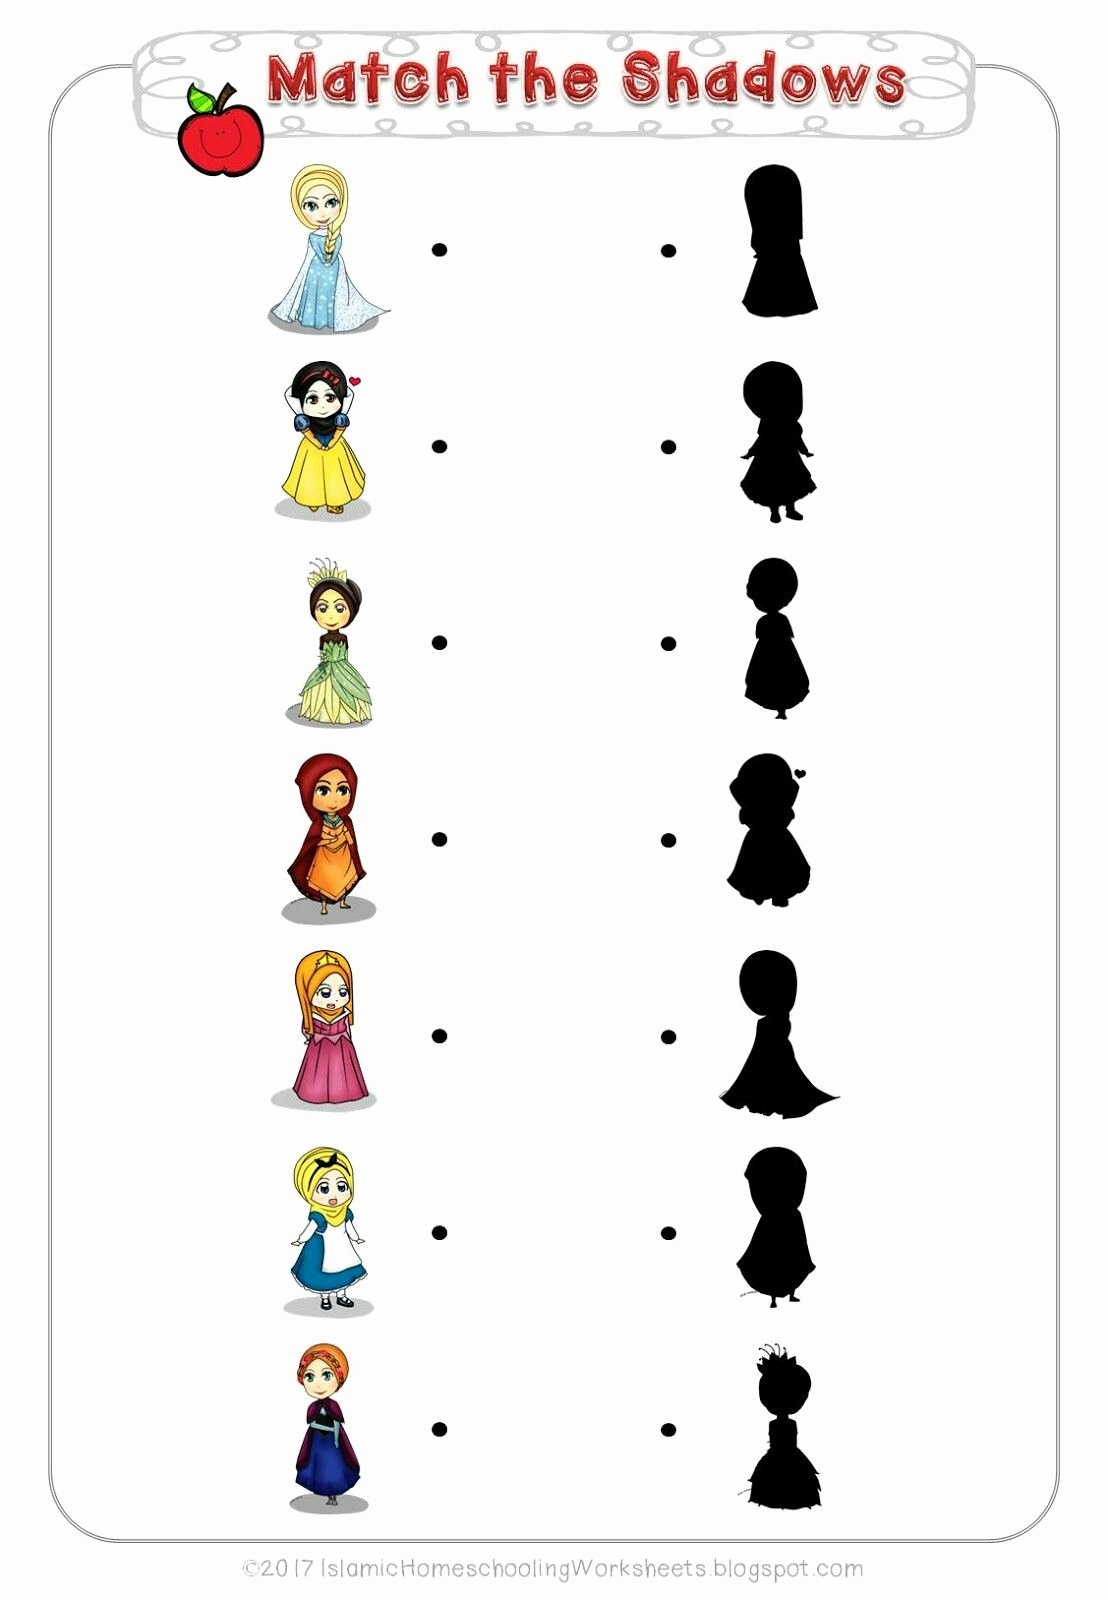 Free Disney Worksheets for Preschoolers Fresh Match the Shadows In Free Disney Princess Preschool Pack